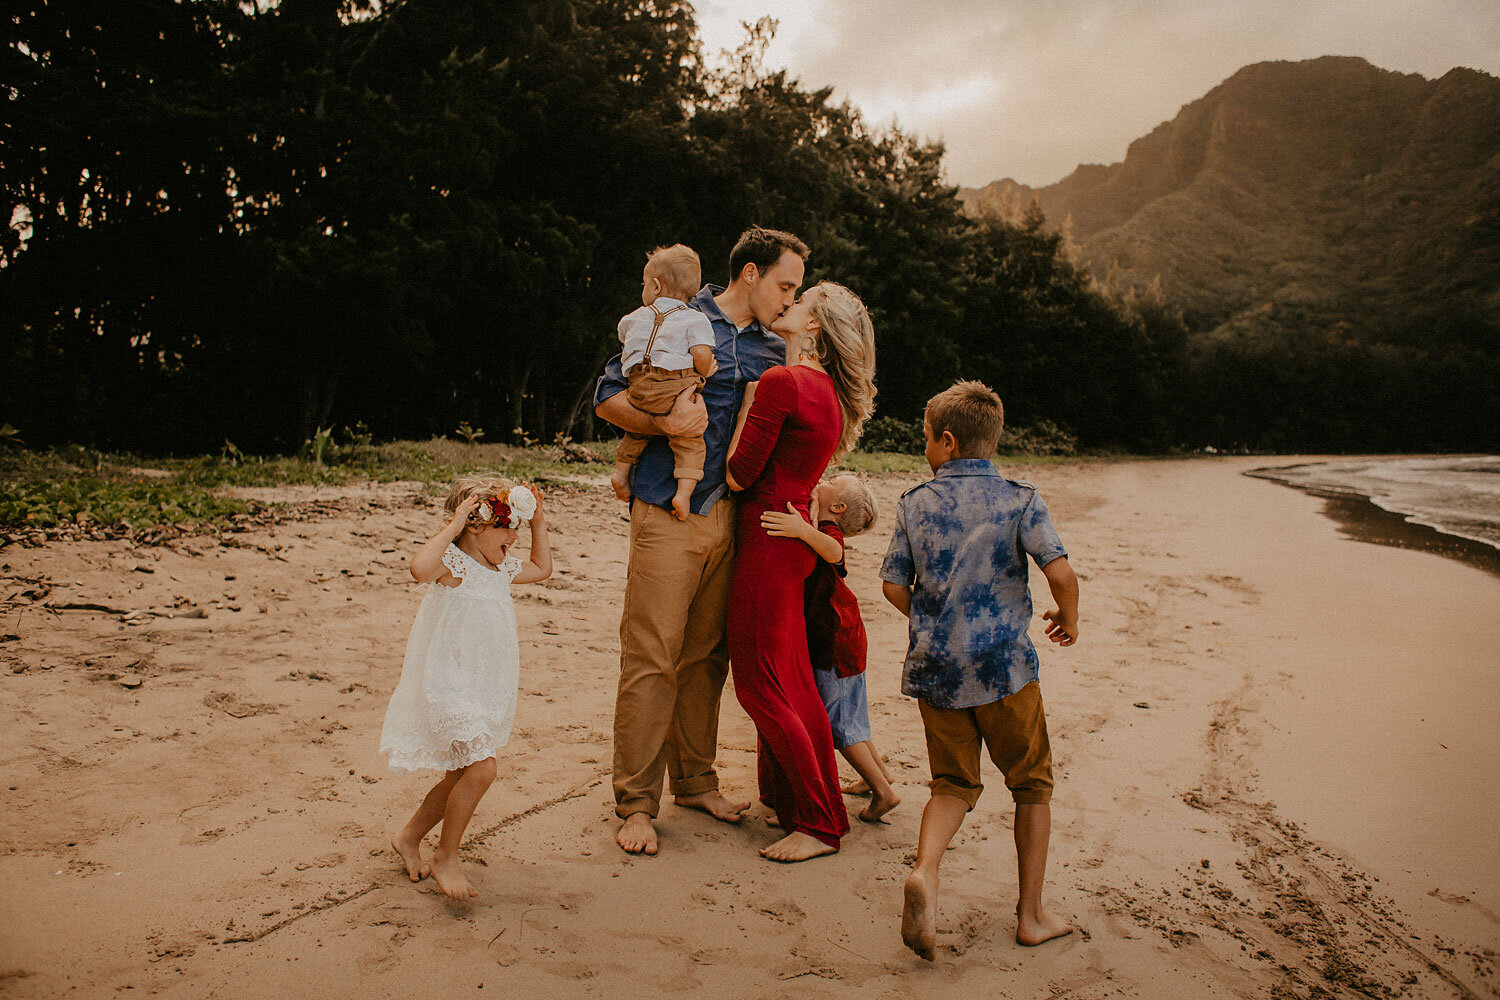 Oahu-Hawaii-Family-Photography-The-Sophia-Co-09.jpg